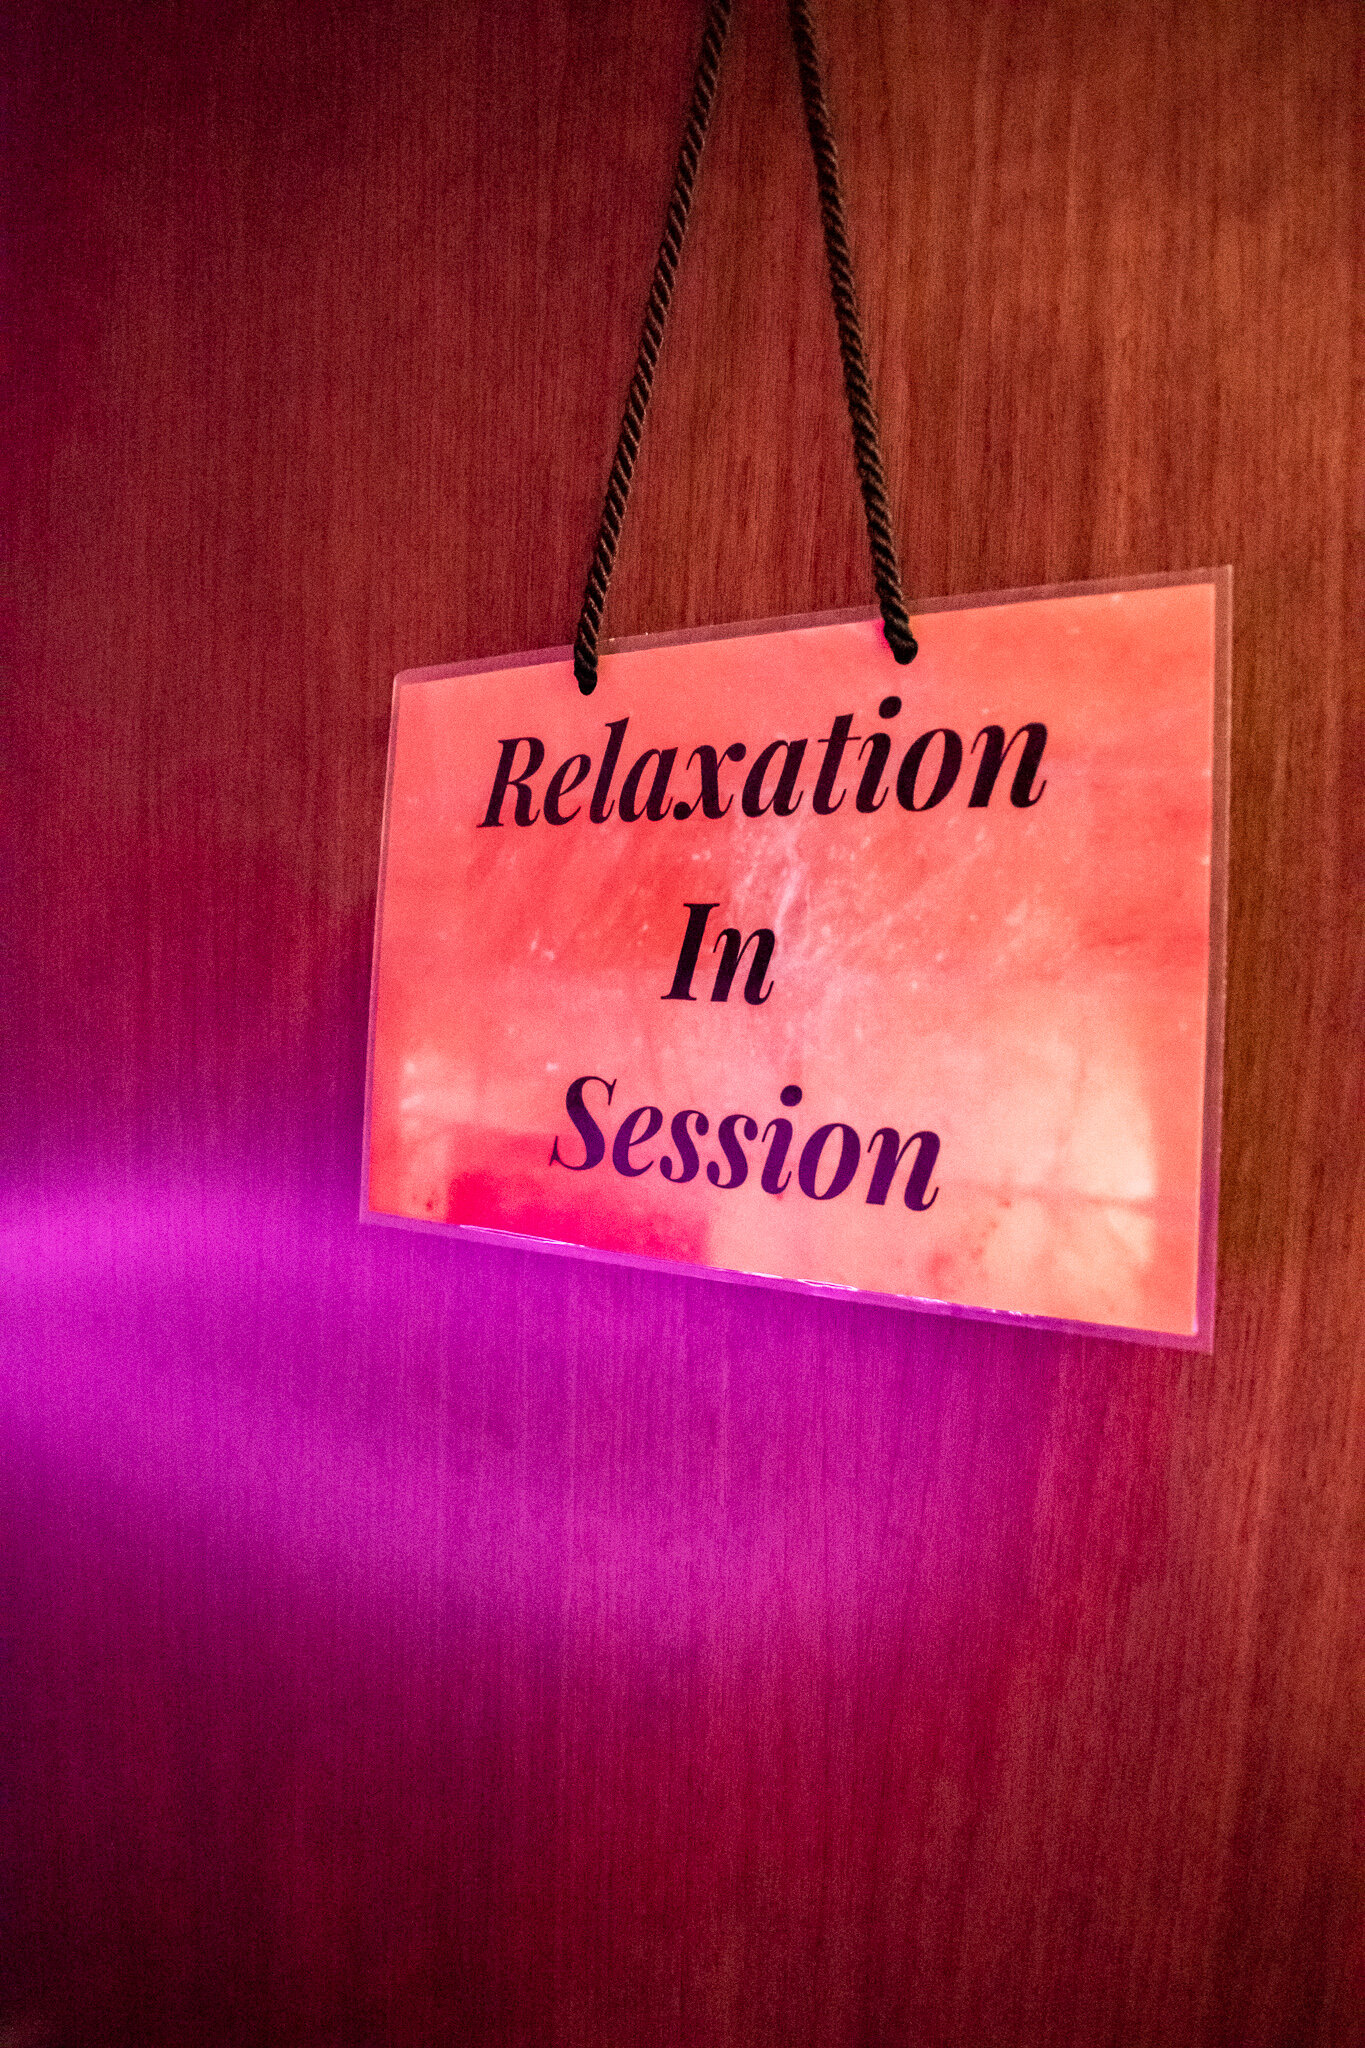 Relaxation in Session.jpg